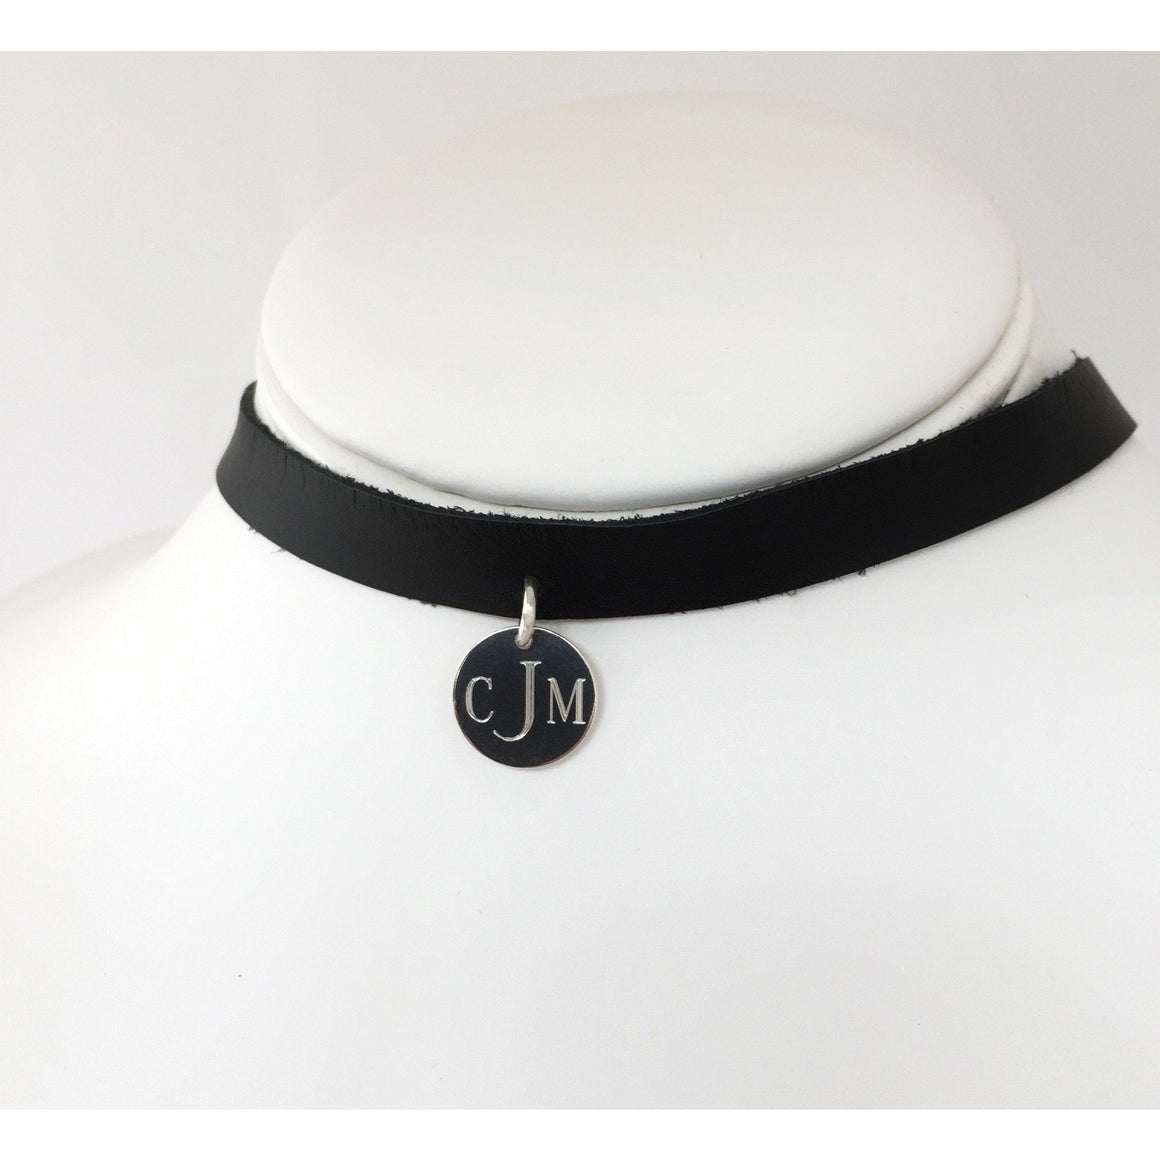 Monogram Leather Choker Necklace Black and Silver